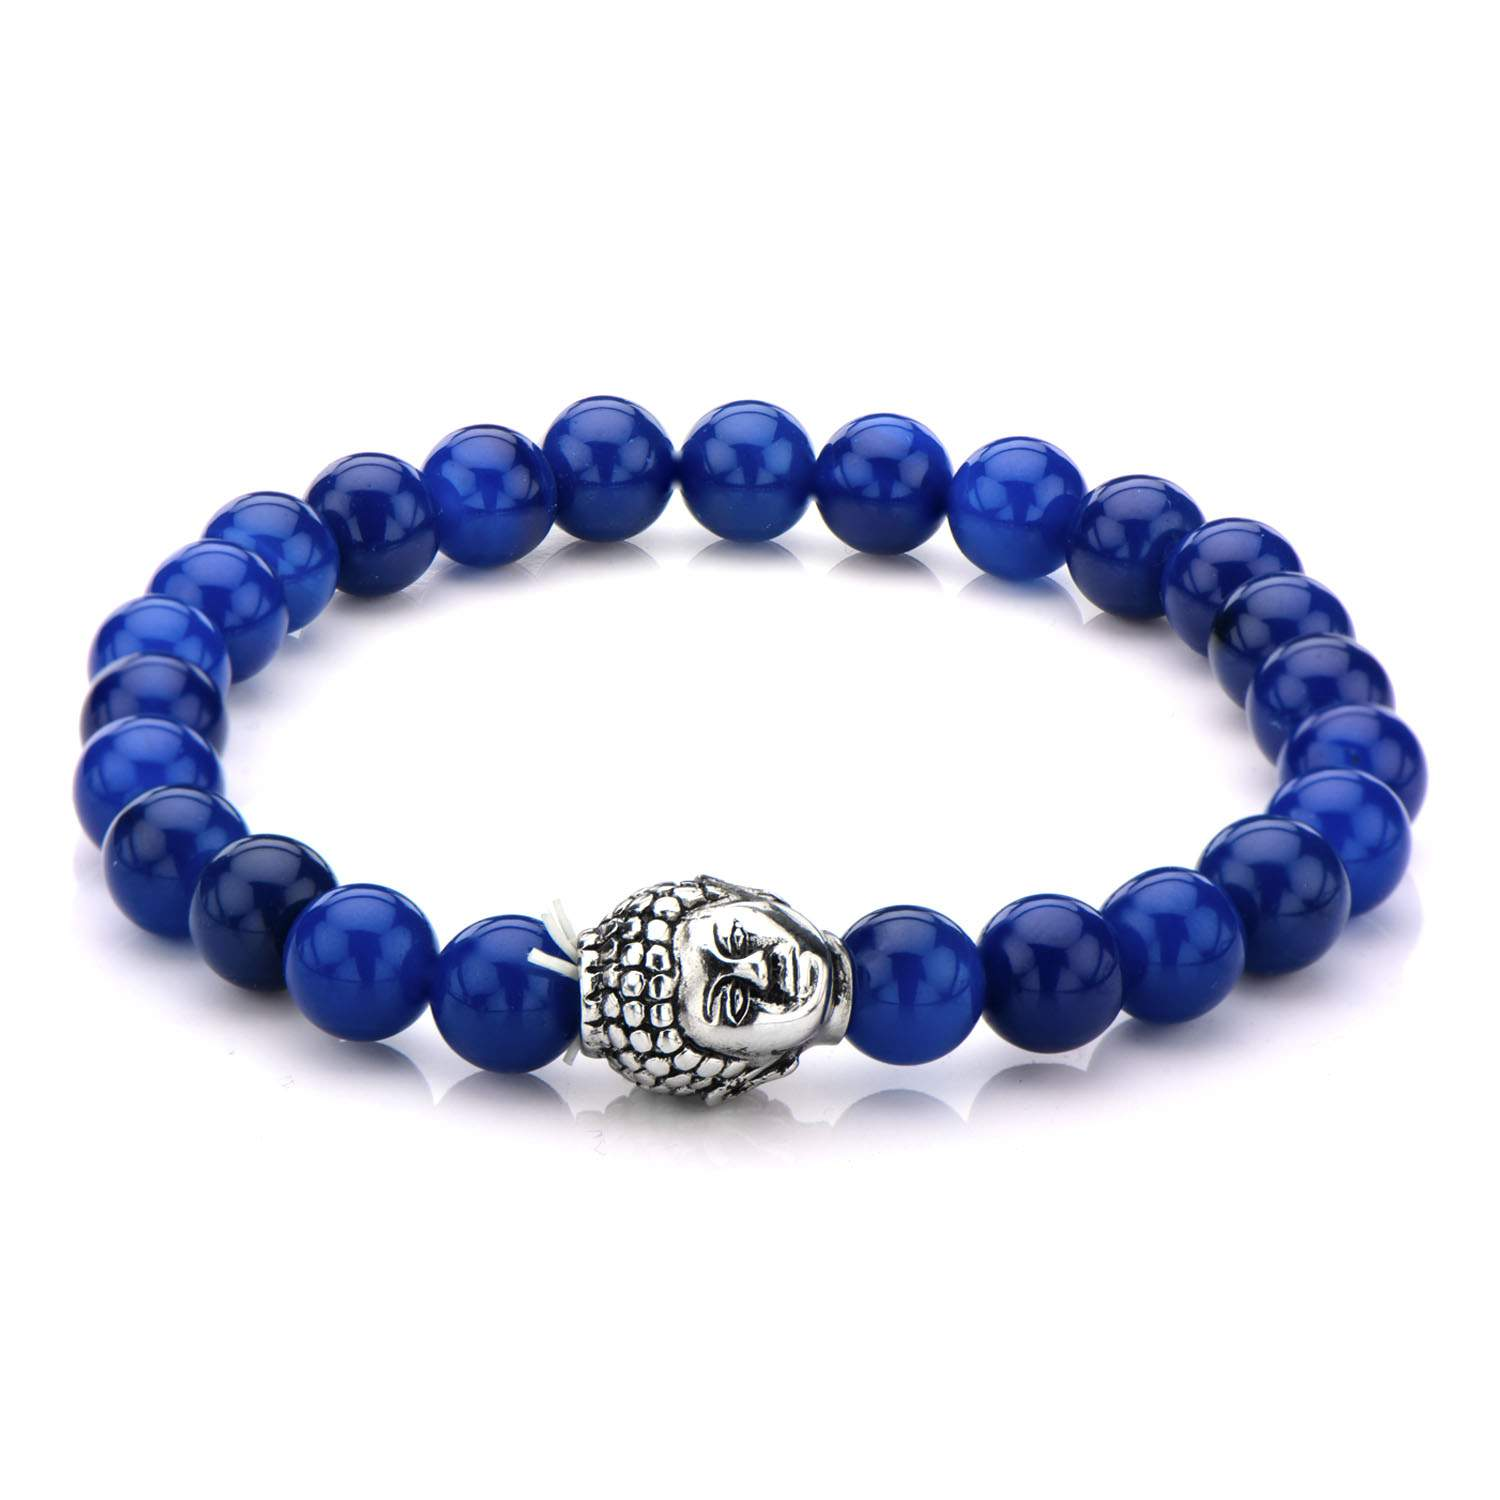 8mm Black Lapis Beads Bracelet with Stainless Steel Buddha Head Charm